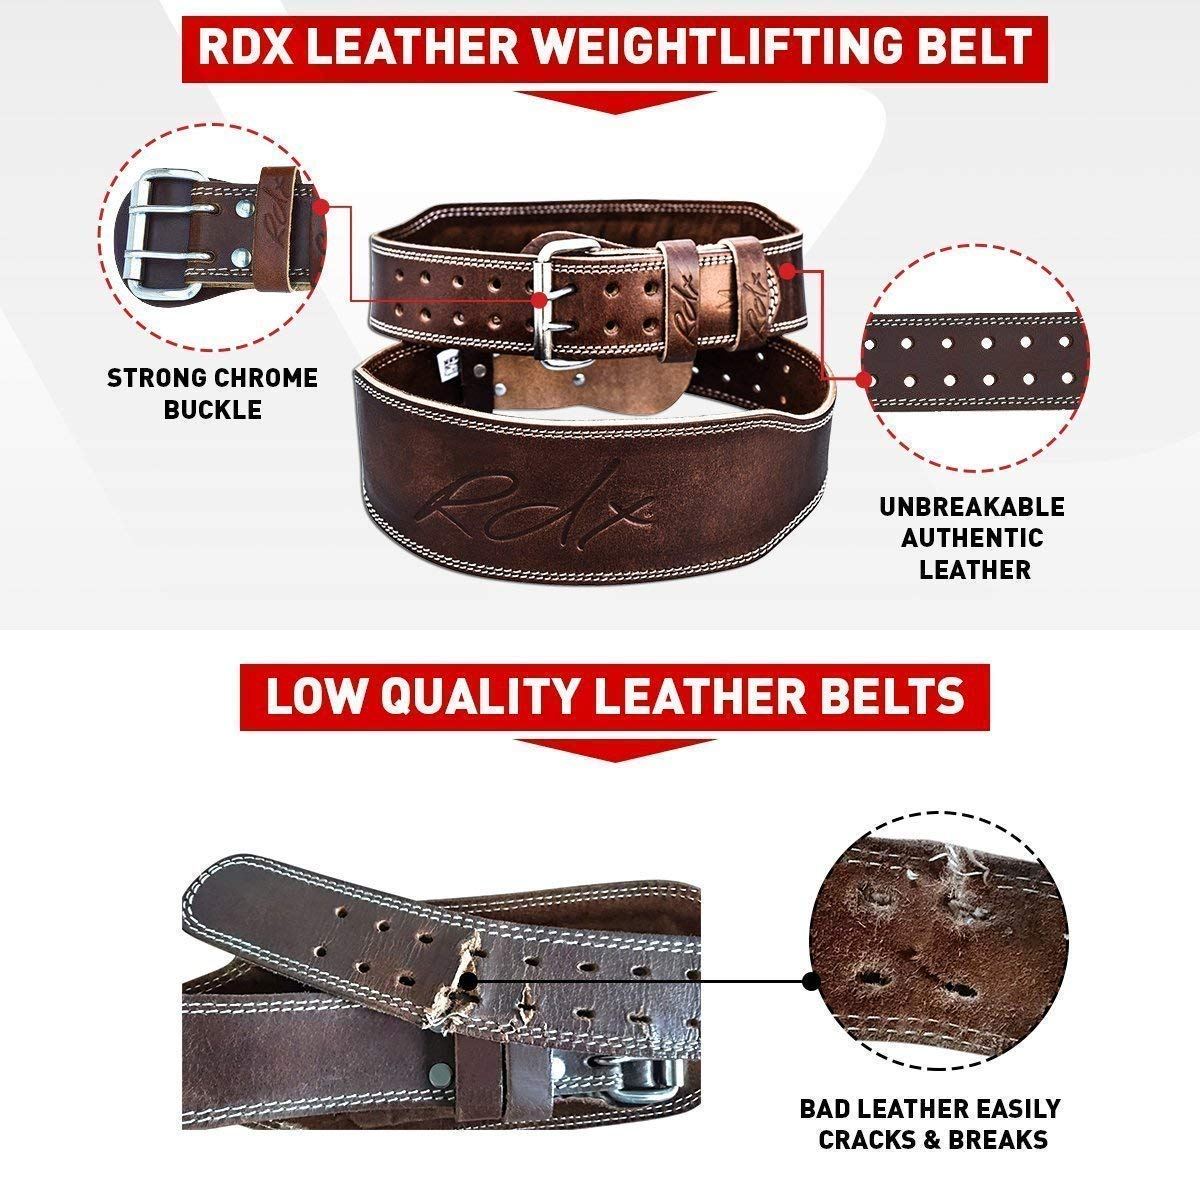 RDX Weight Lifting Belt 6'' Cow Hide Leather Double Prong Back Support Gym Exercise Bodybuilding Training Workout by RDX (Image #7)